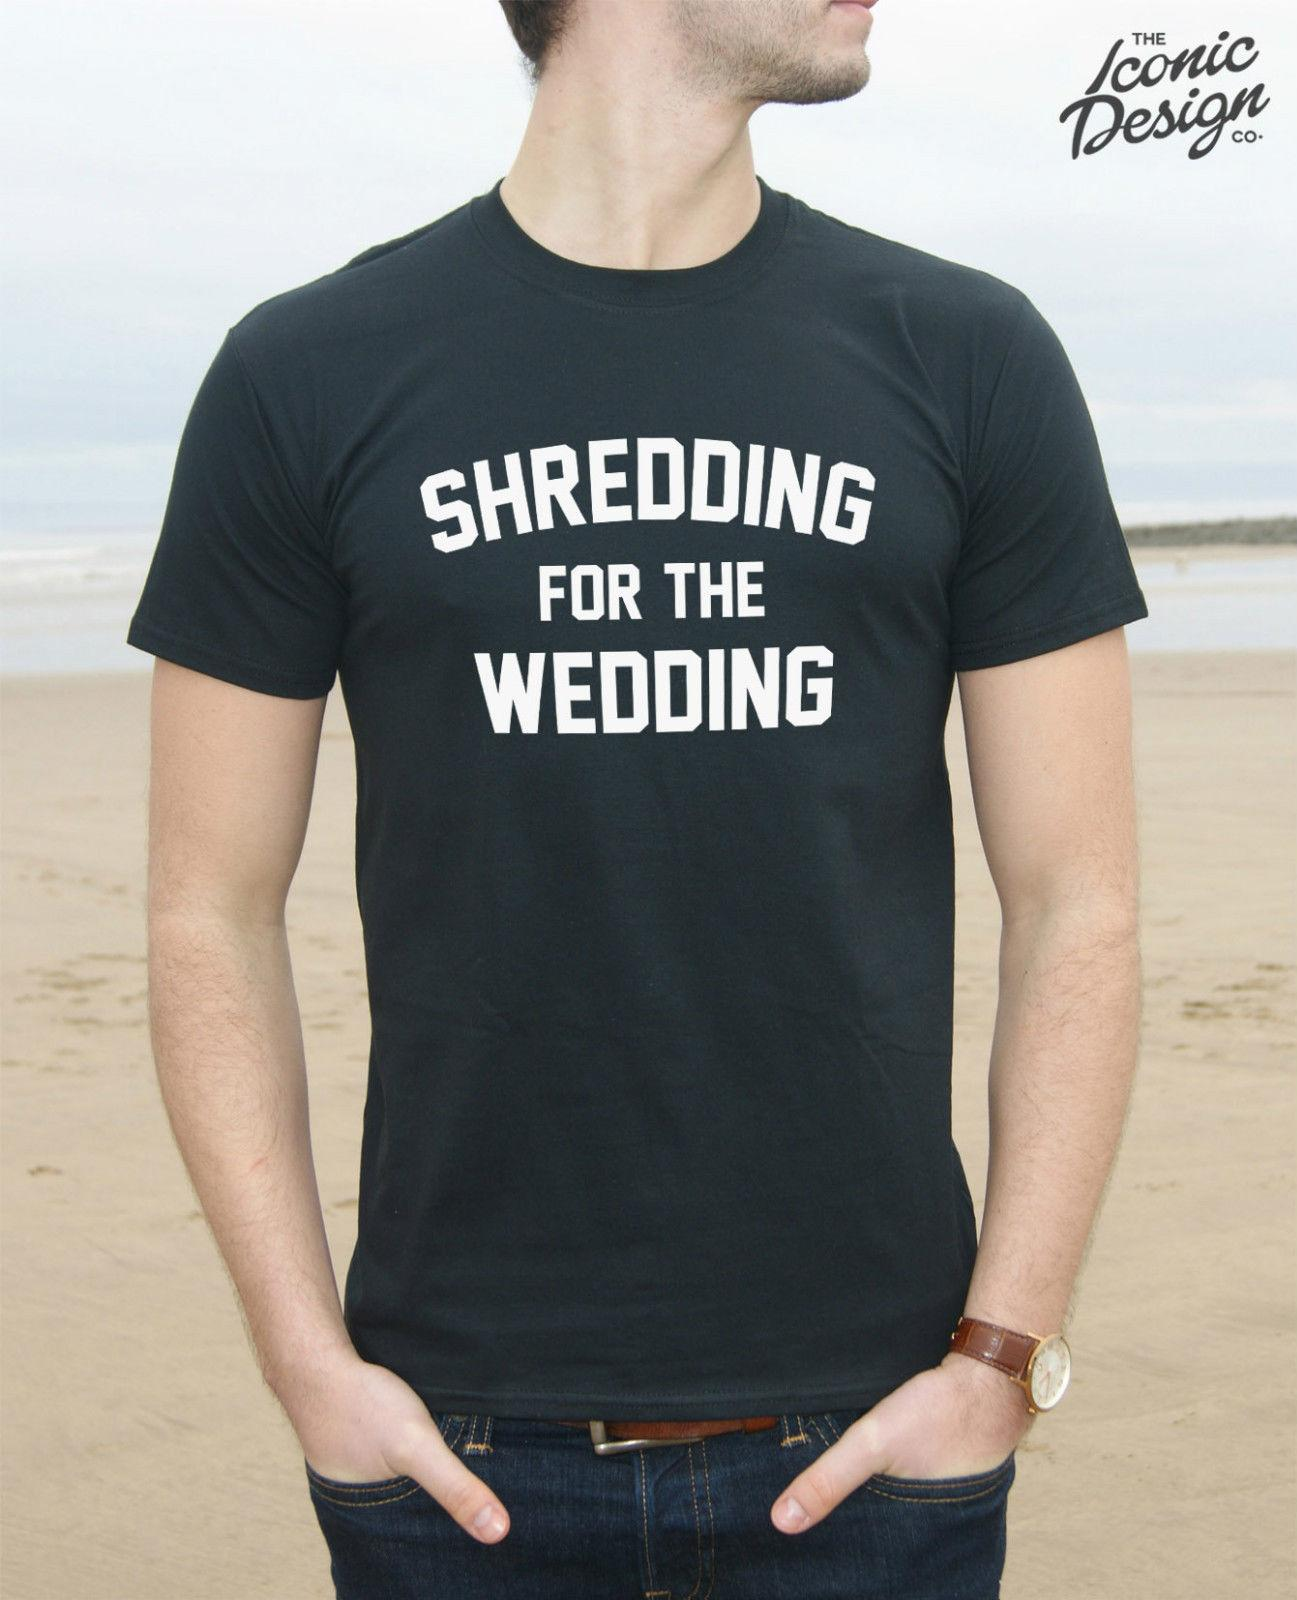 Shredding For The Wedding T Shirt Top Gift Funny Marriage Workout